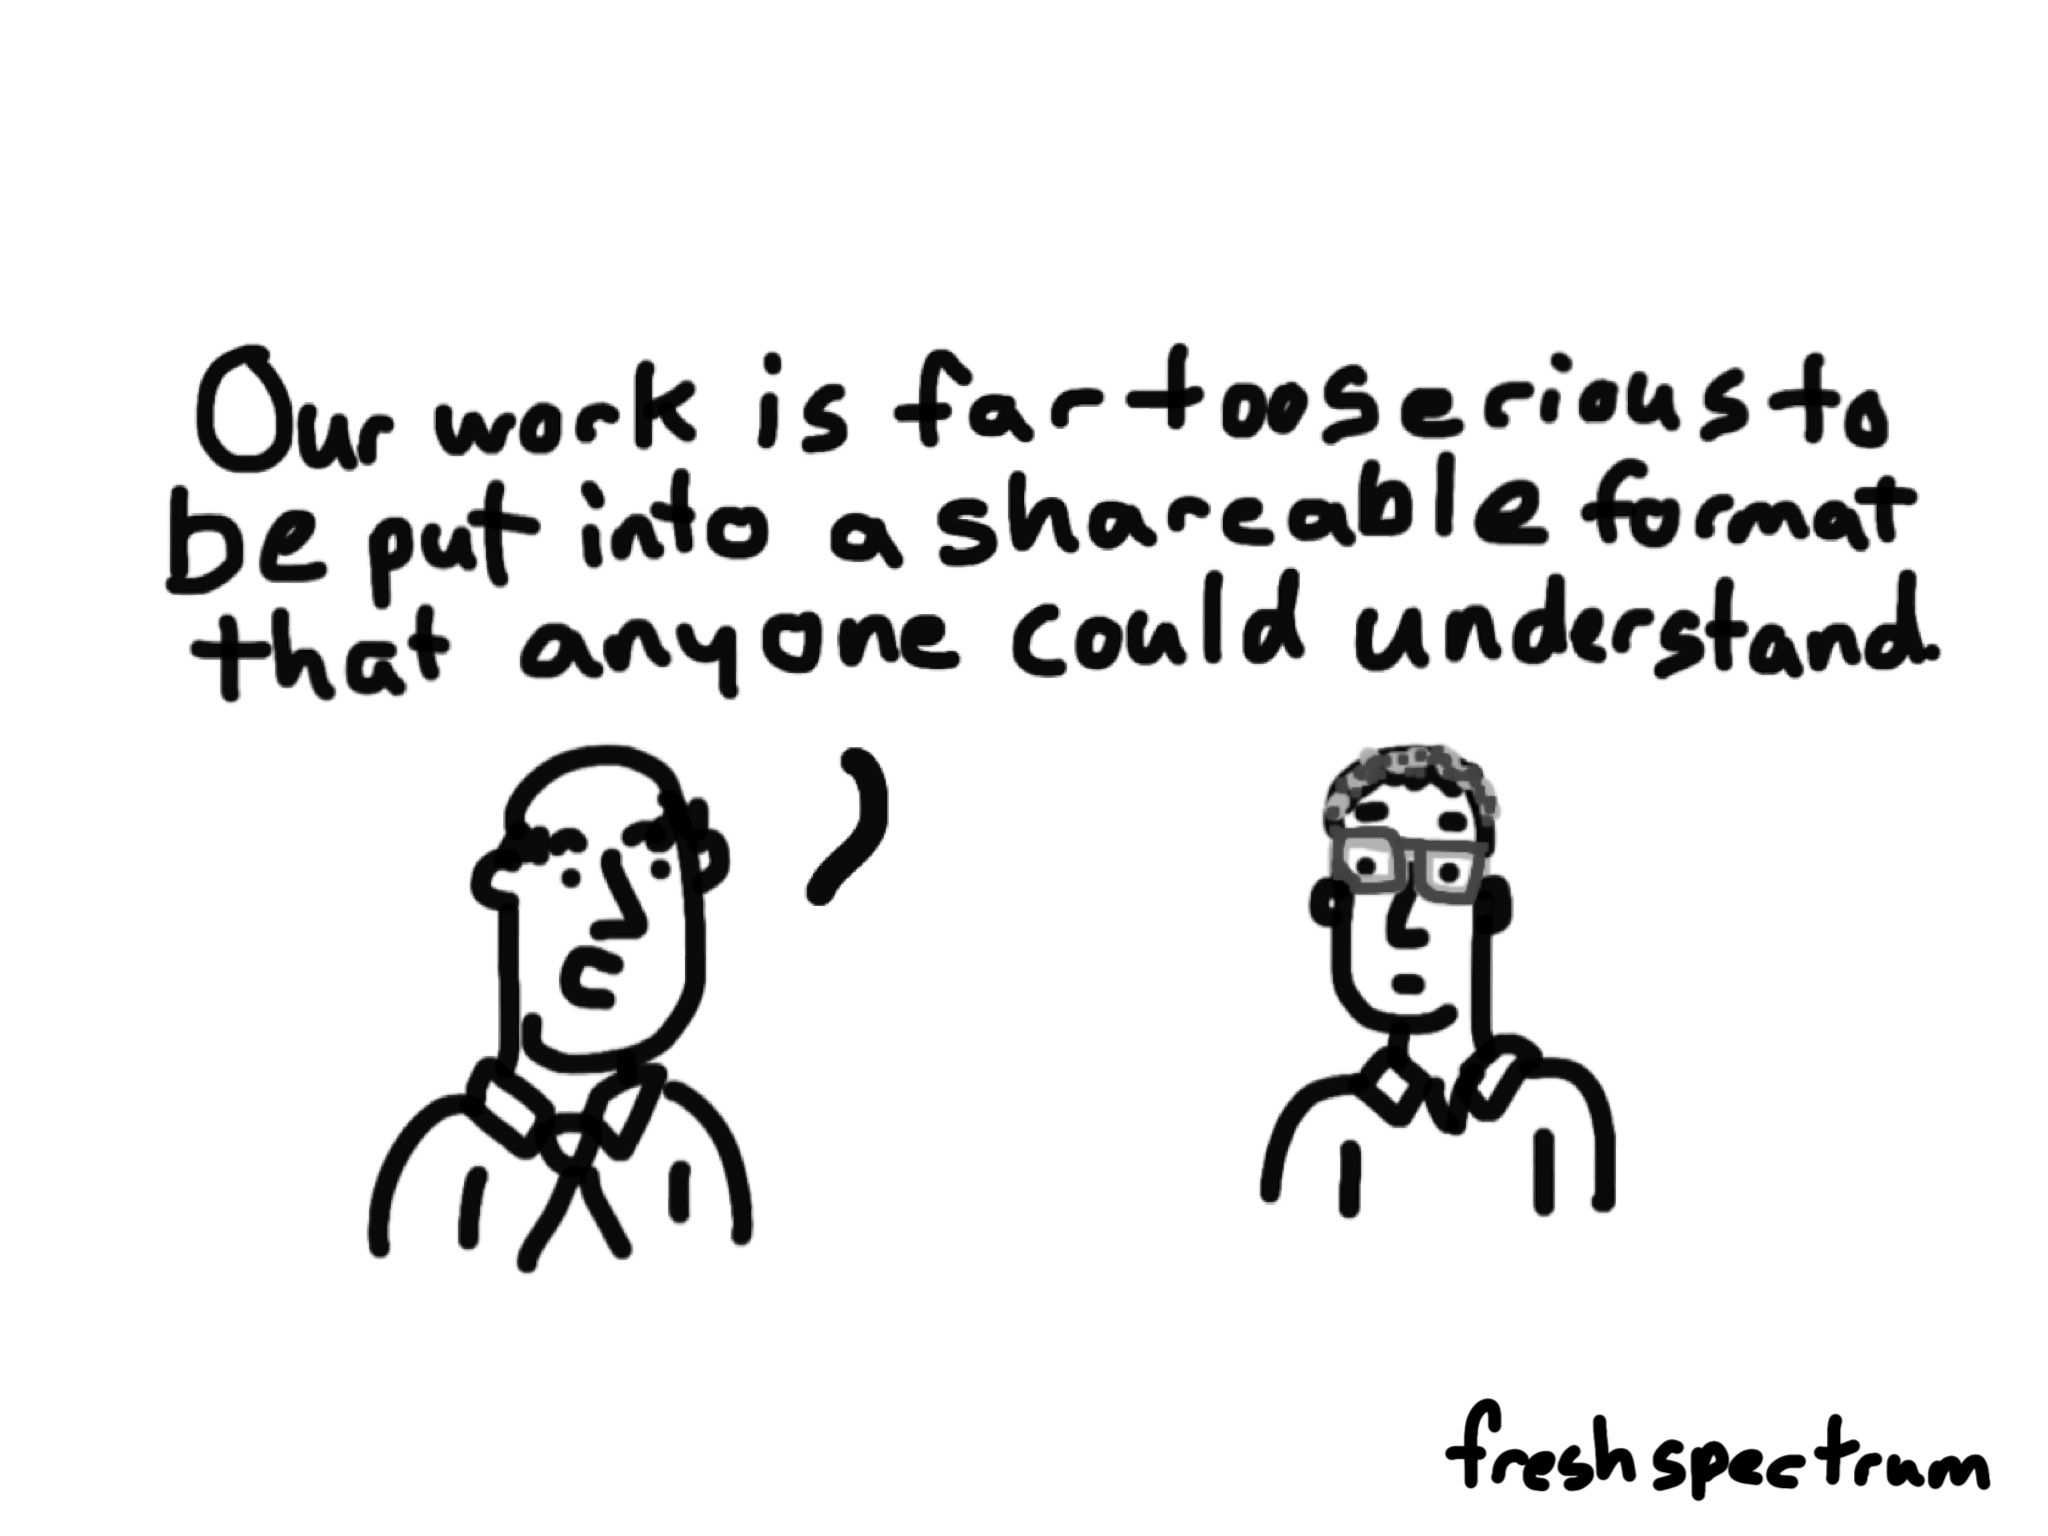 Cartoon-our work is far too serious to be put into a format that anyone could understand.